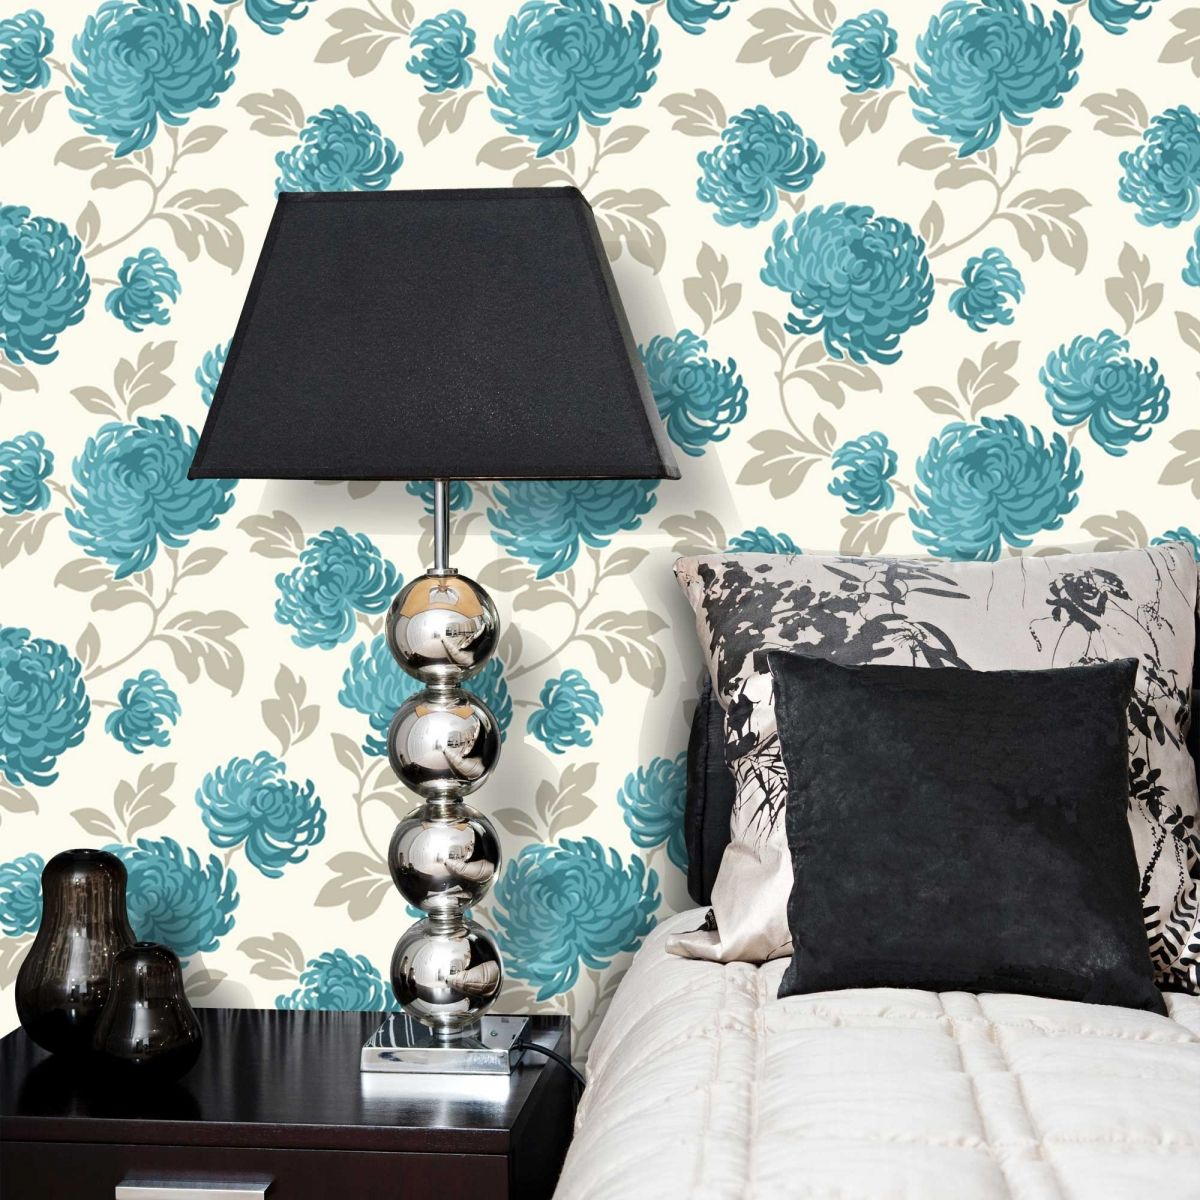 Teal And White Bloom Floral Wallpaper